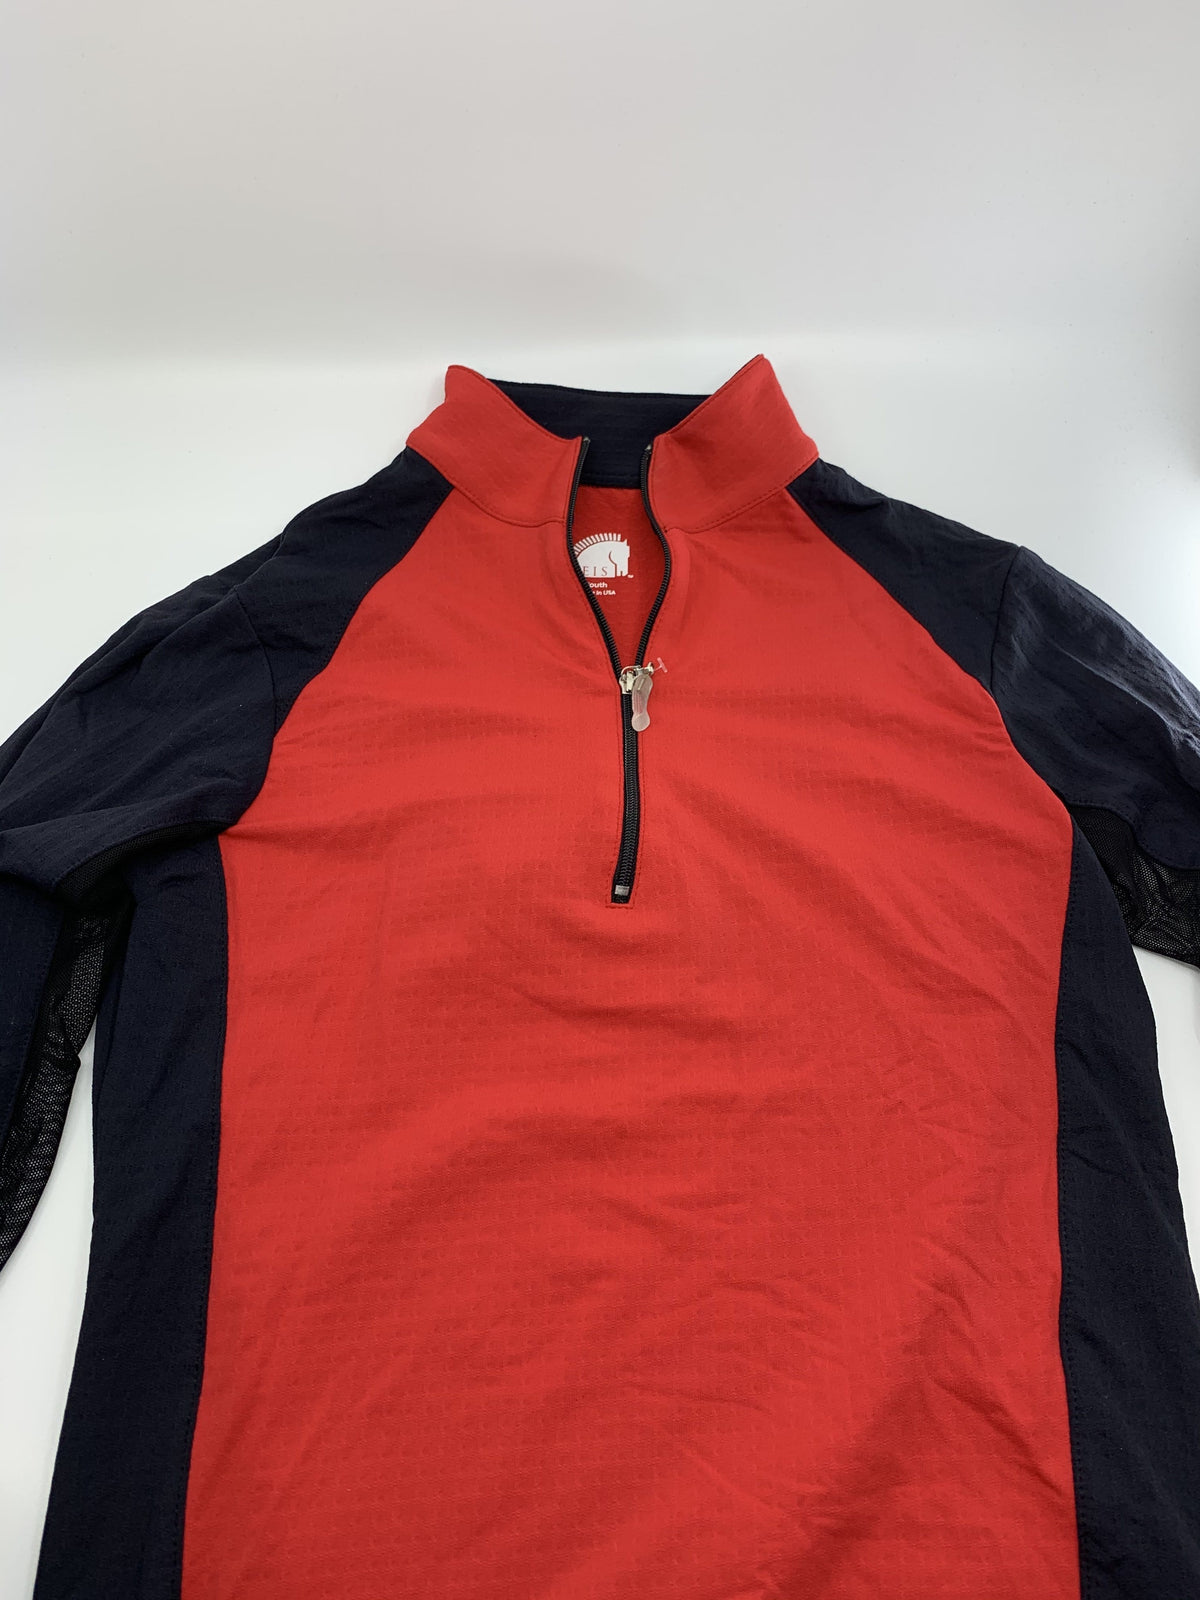 EIS Youth Shirt Y8-10 Red/Black Panel Youth EIS Sun Shirt equestrian team apparel online tack store mobile tack store custom farm apparel custom show stable clothing equestrian lifestyle horse show clothing riding clothes ETA Kids Equestrian Fashion | EIS Sun Shirts horses equestrian tack store